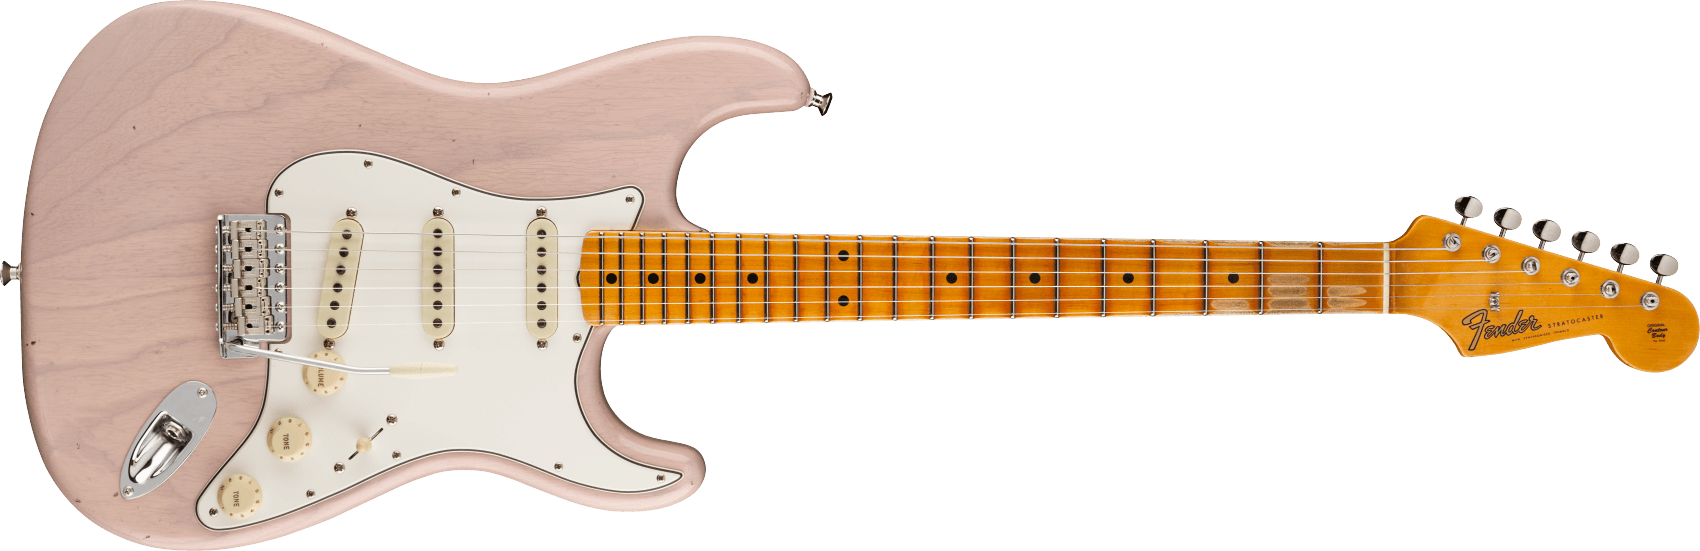 9231012919: Maple Fingerboard, Dirty White Blonde